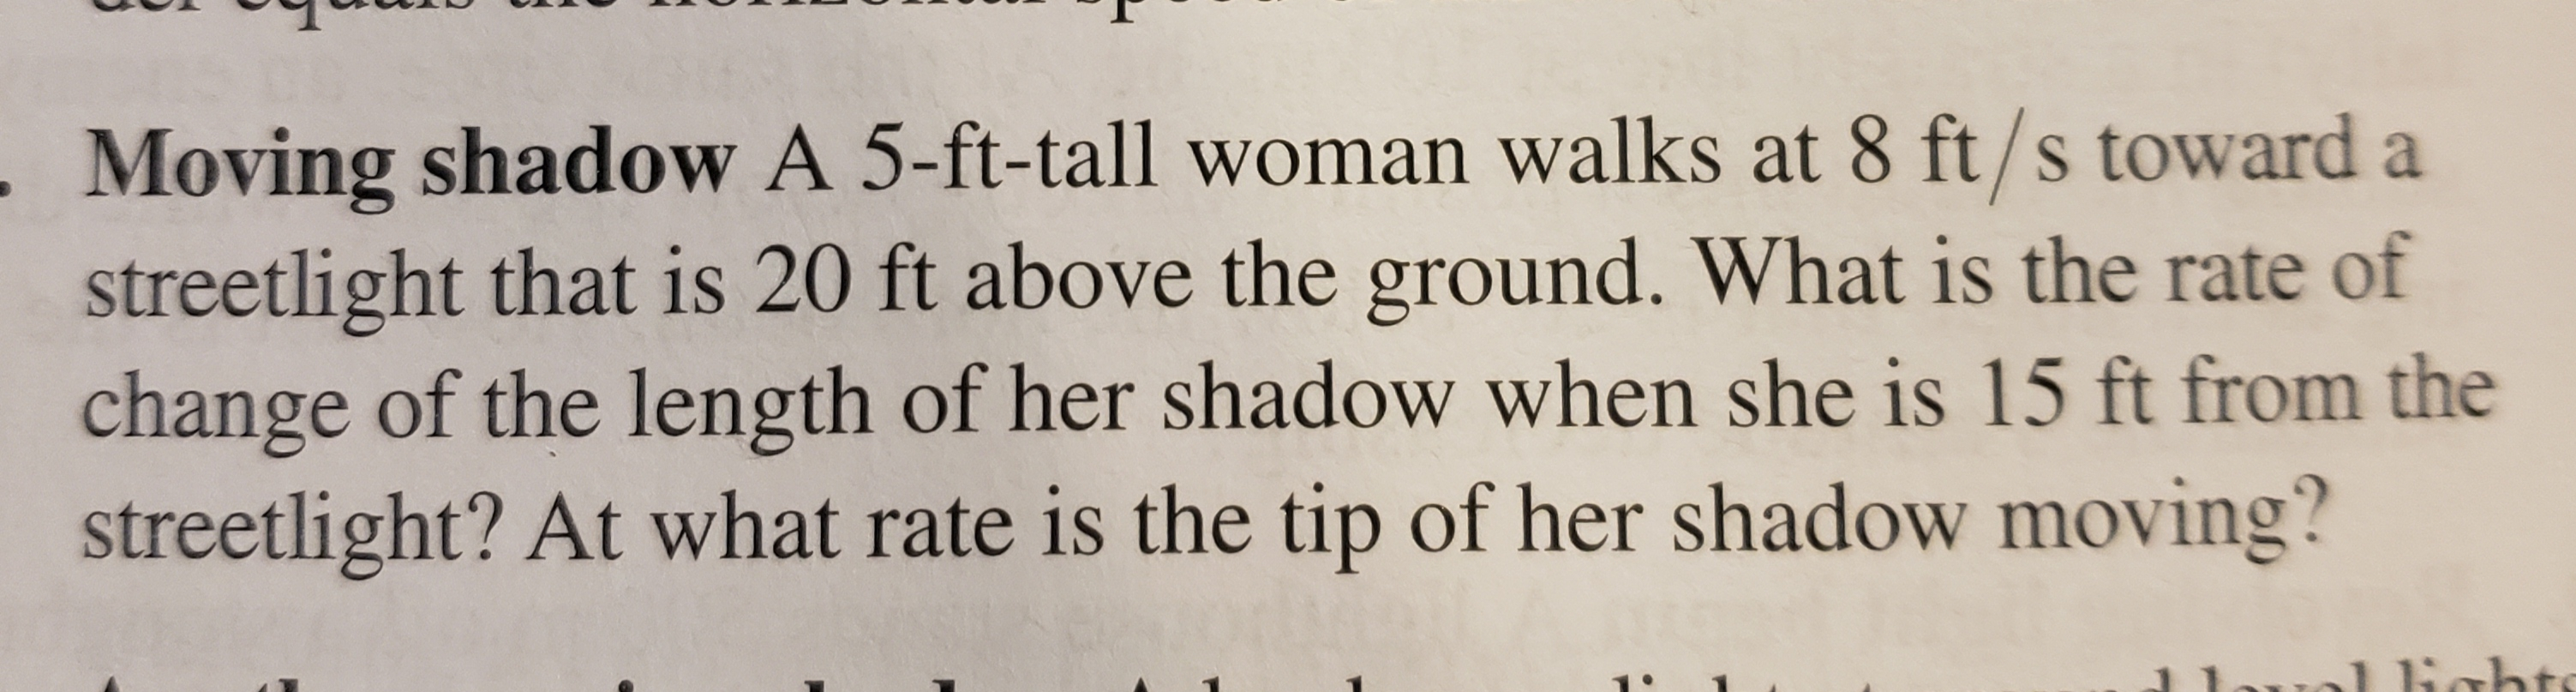 Moving shadow A 5-ft-tall woman walks at 8 ft/s toward a streetlight that is 20 ft above the ground. What is the rate of change of the length of her shadow when she is 15 ft from the streetlight? At what rate is the tip of her shadow moving? J Babt